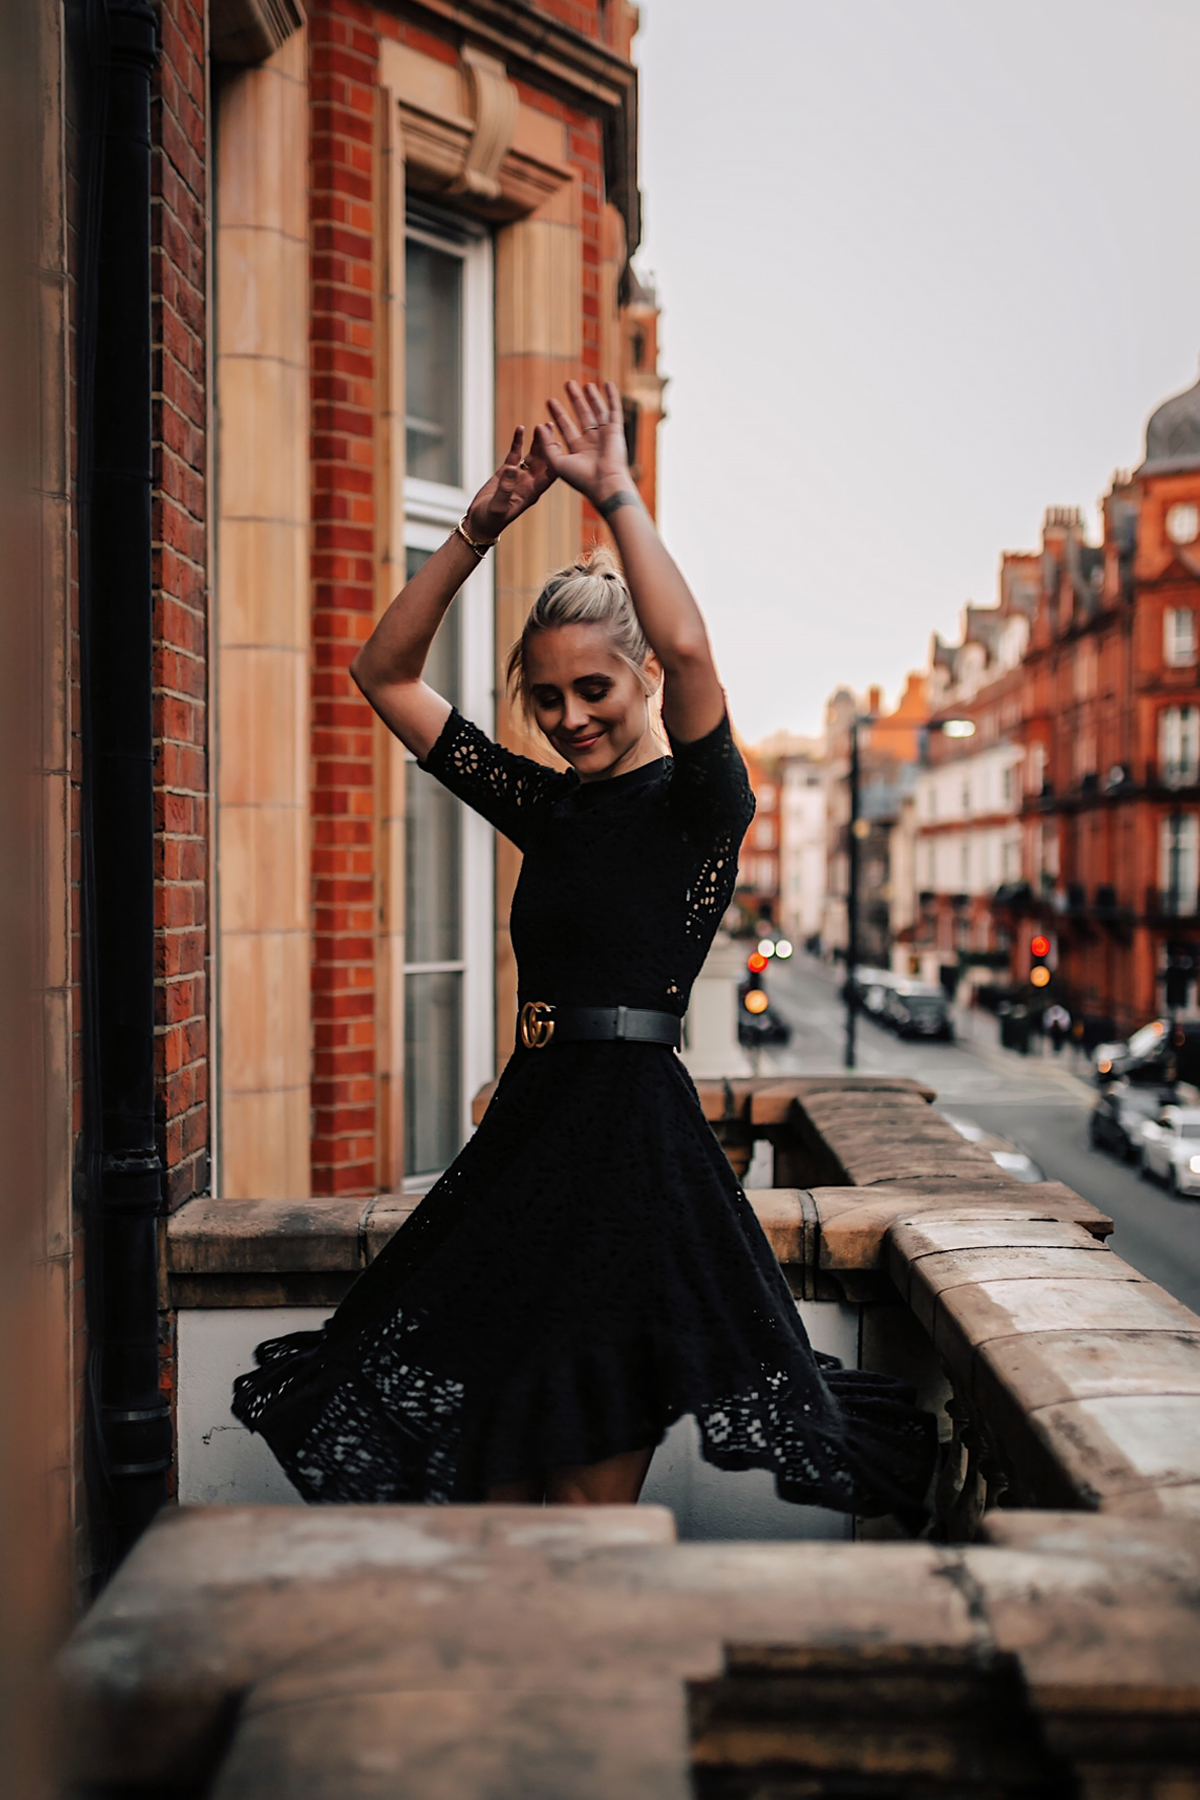 Blonde Women Twirling Wearing Black Lace Dress with Gucci Belt on London Balcony